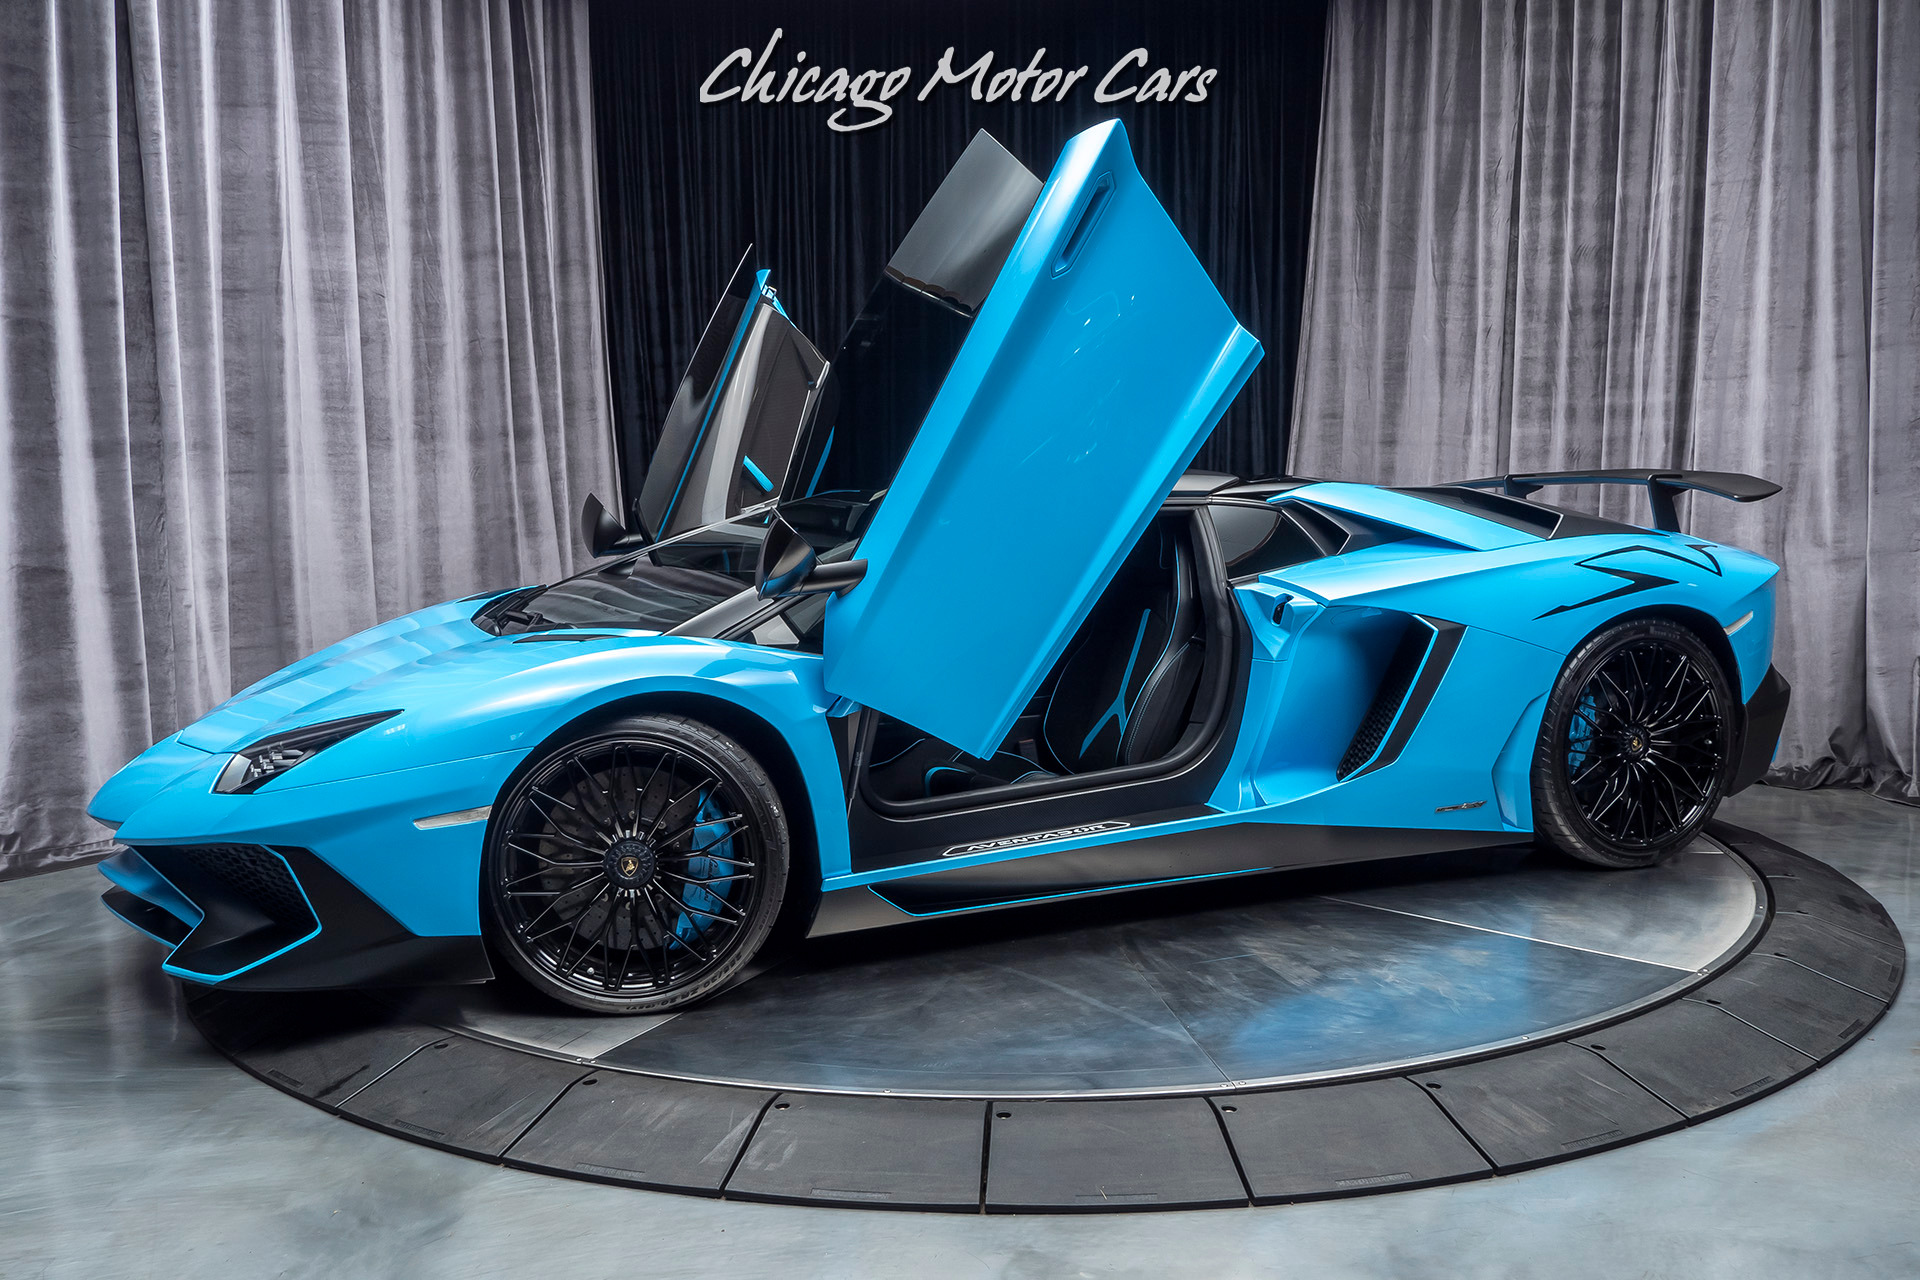 Used 2017 Lamborghini Aventador Lp750 4 Sv Roadster Upgraded Exhaust Radar Serviced Perfect Over 601k New For Sale Special Pricing Chicago Motor Cars Stock 16730